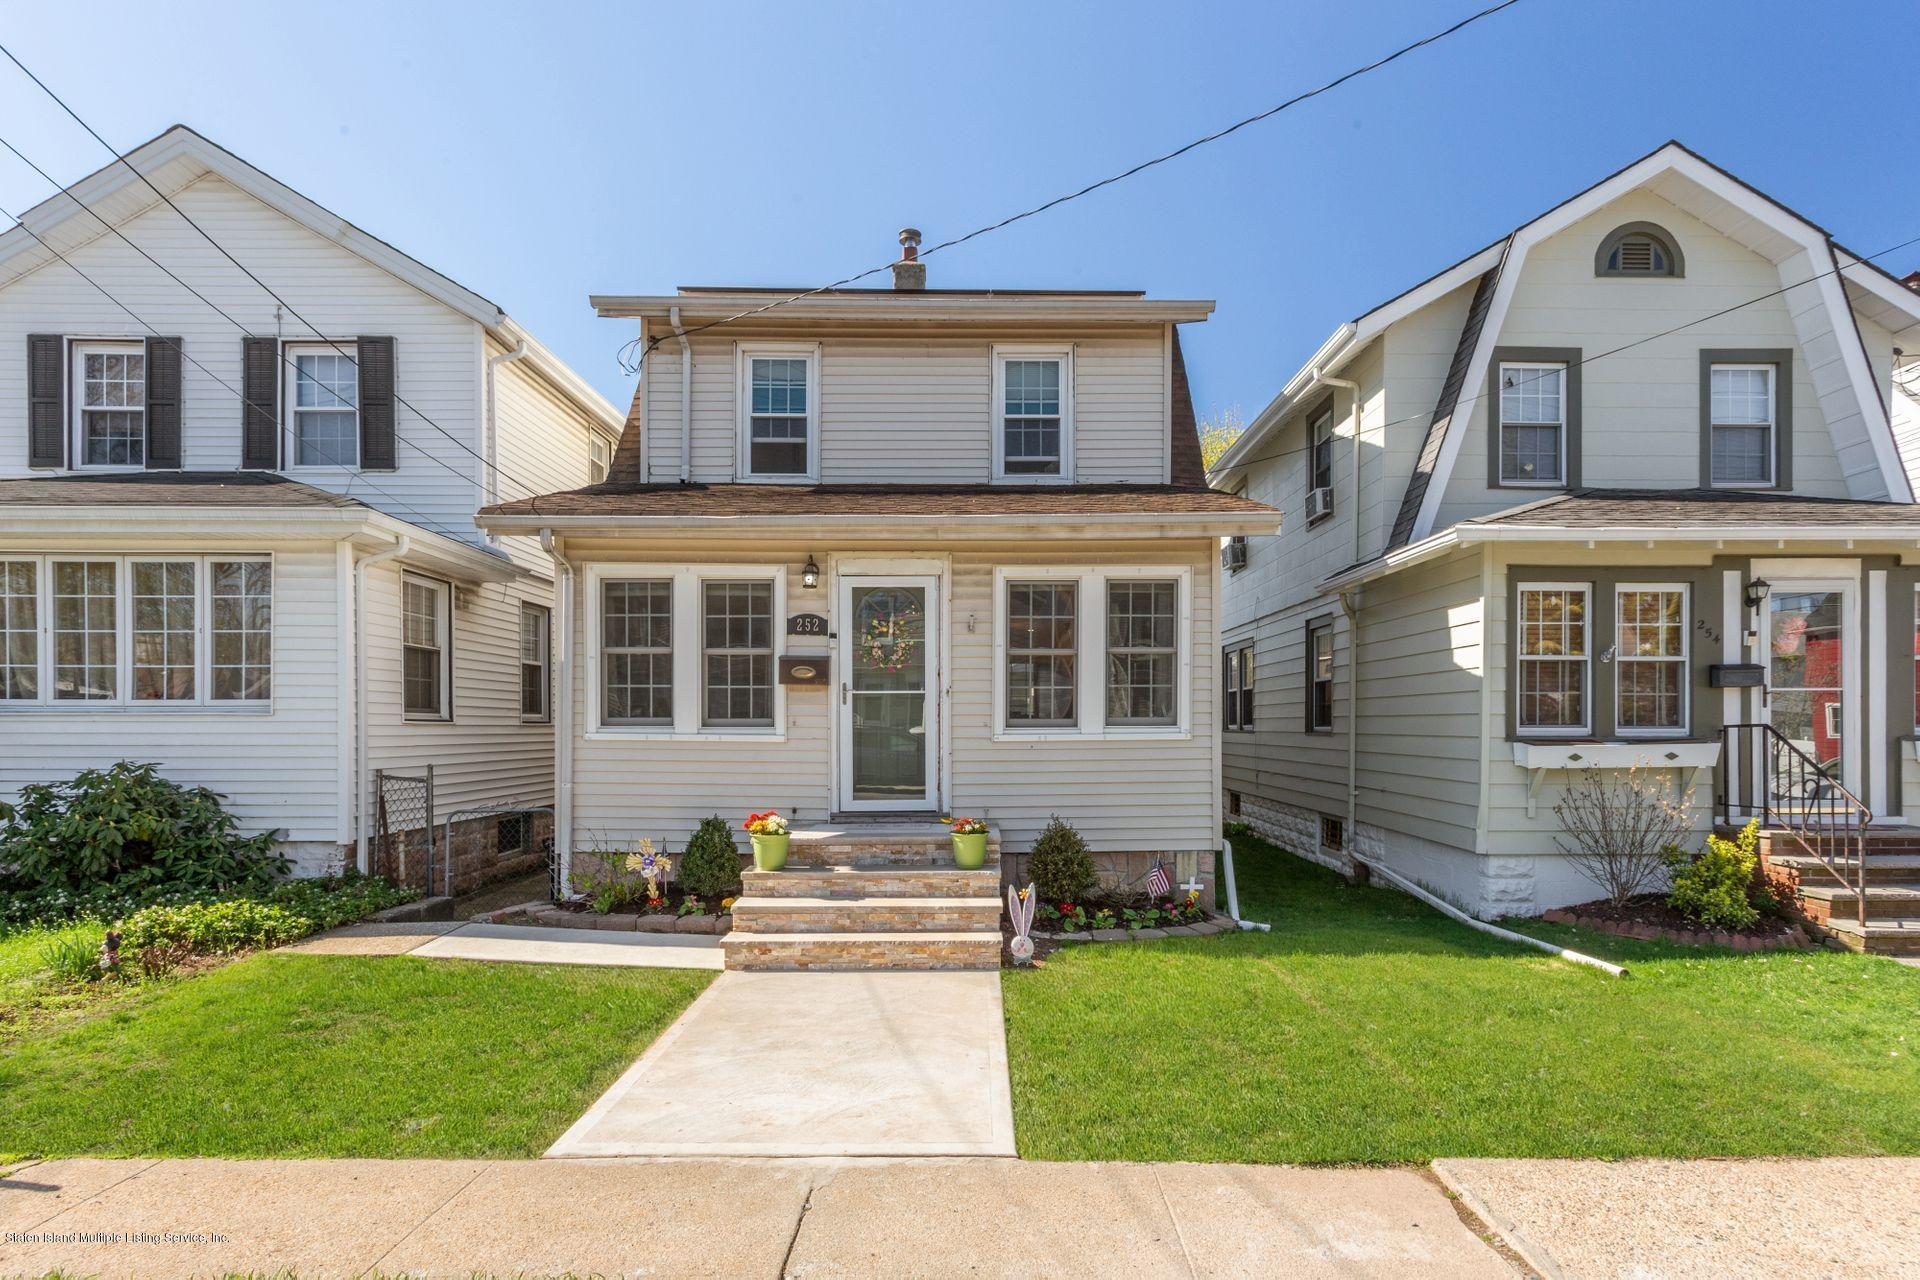 Single Family - Detached 252 Waters Avenue  Staten Island, NY 10314, MLS-1128050-2